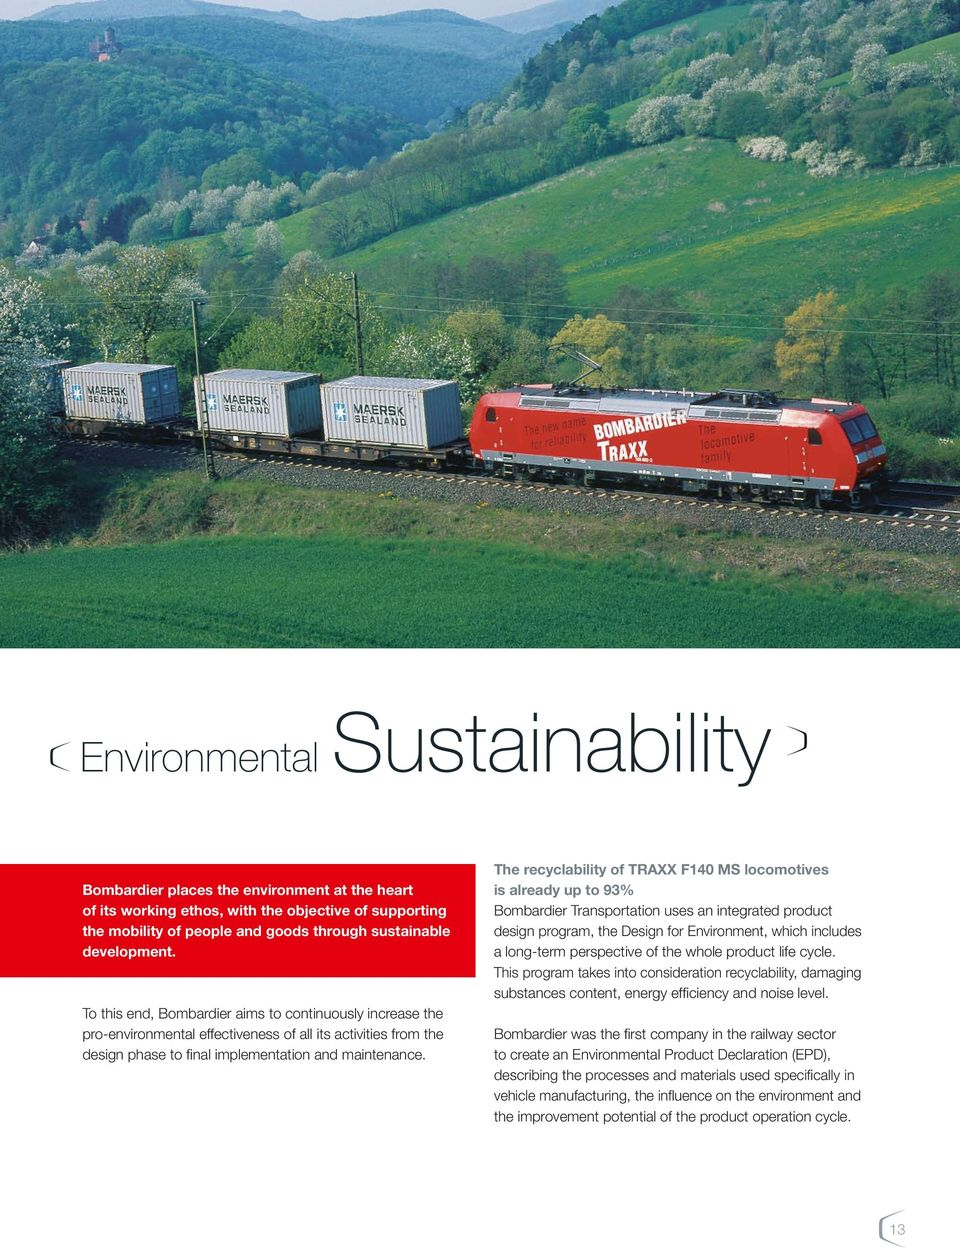 The recyclability of TRAXX F140 MS locomotives is already up to 93% Bombardier Transportation uses an integrated product de sign program, the Design for Environment, which in cludes a long-term